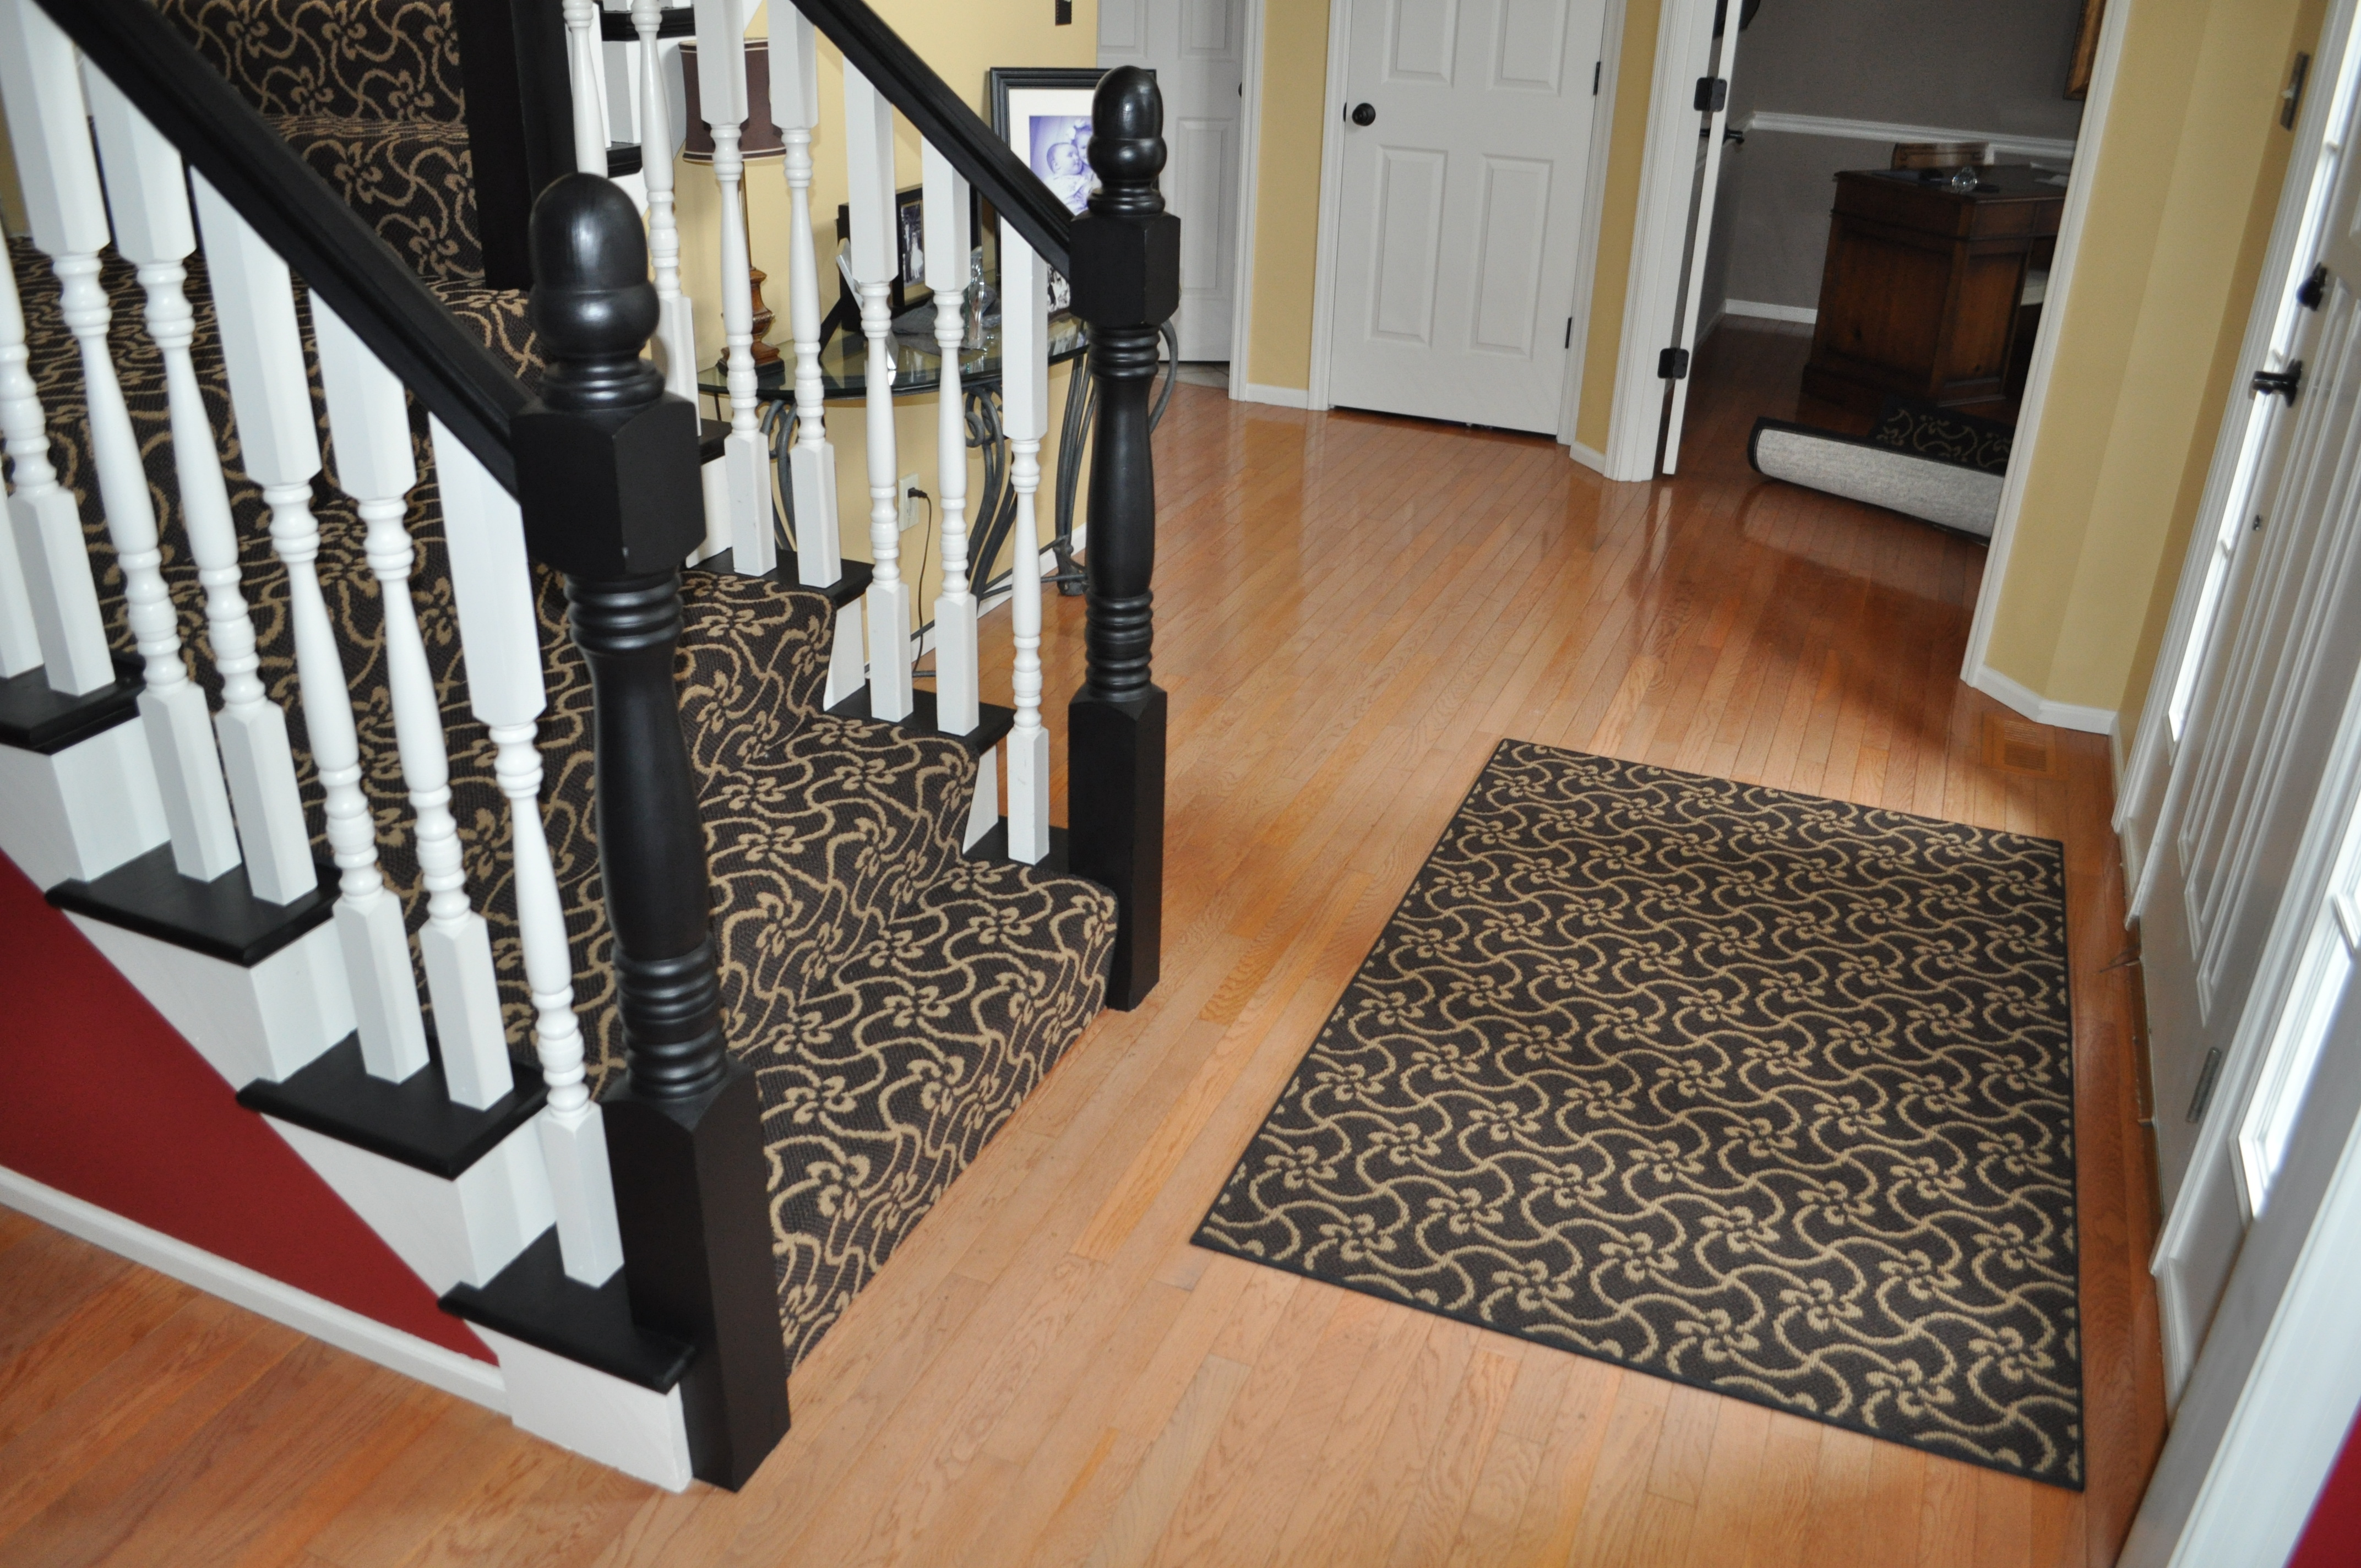 Carpeting runner on stairs with matching area rug ~ Chesterfield, MO